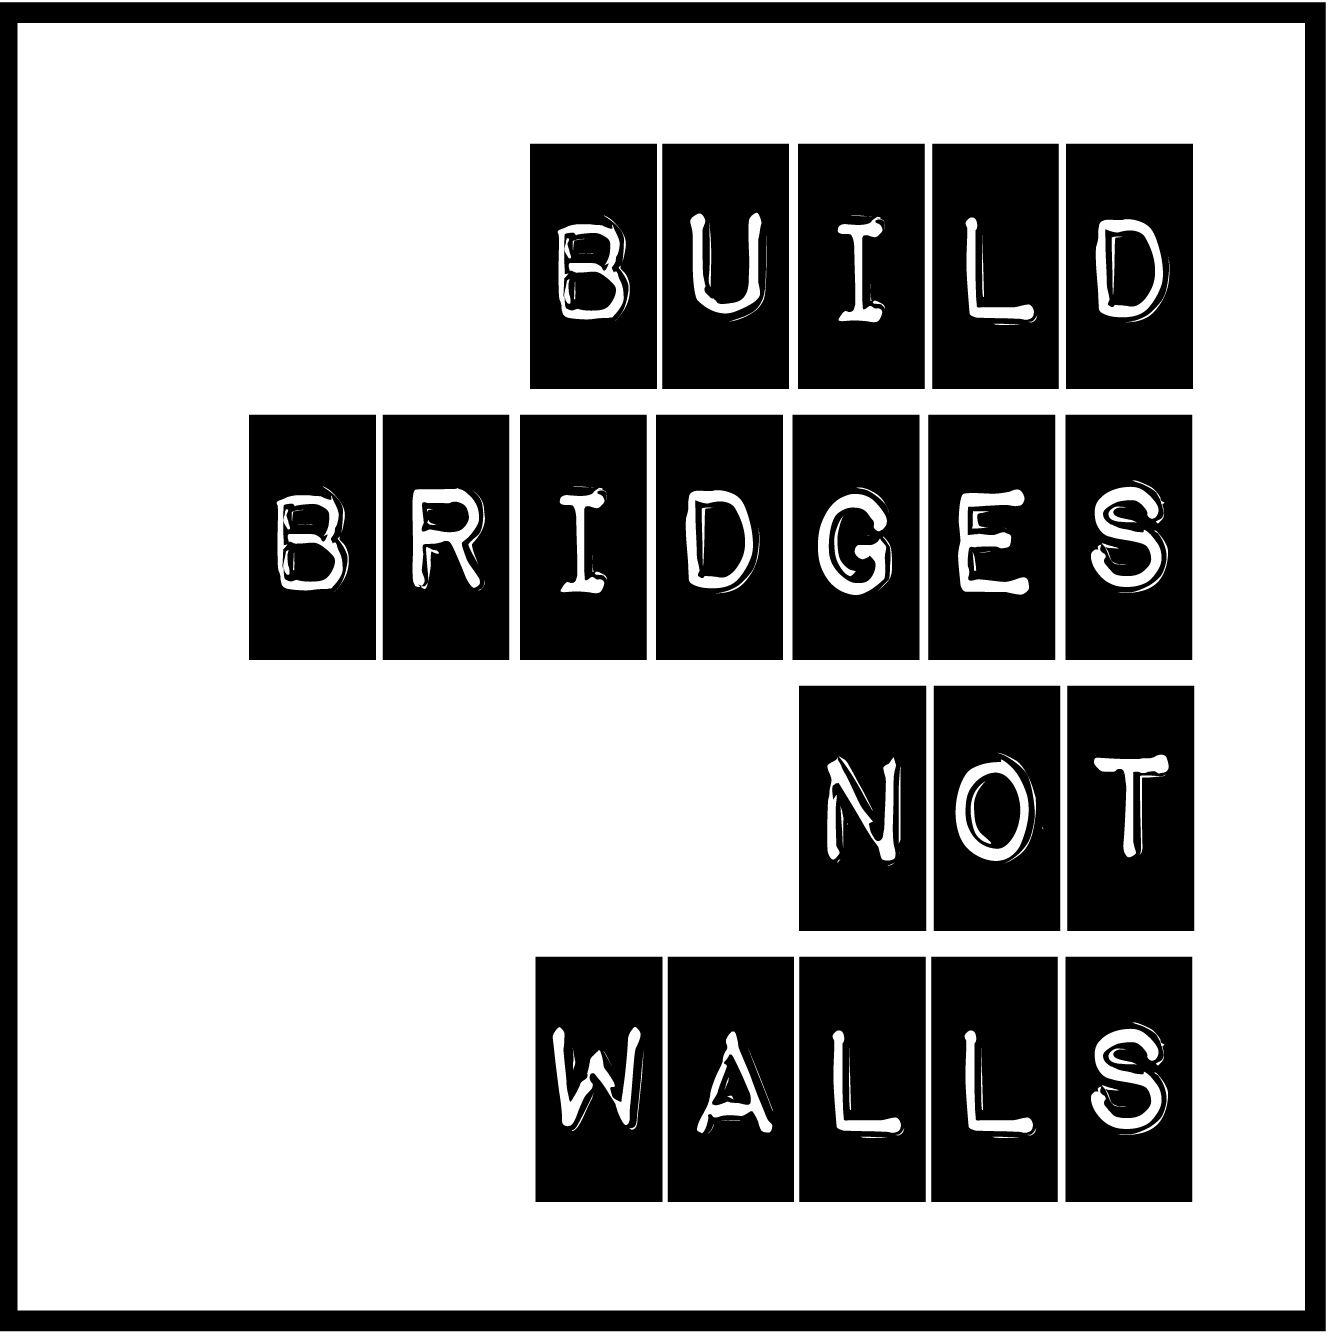 bridges not walls a book about interpersonal Bridges not walls: a book about interpersonal communication by john stewart starting at $099 bridges not walls: a book about interpersonal communication has 13 available editions to buy at alibris.